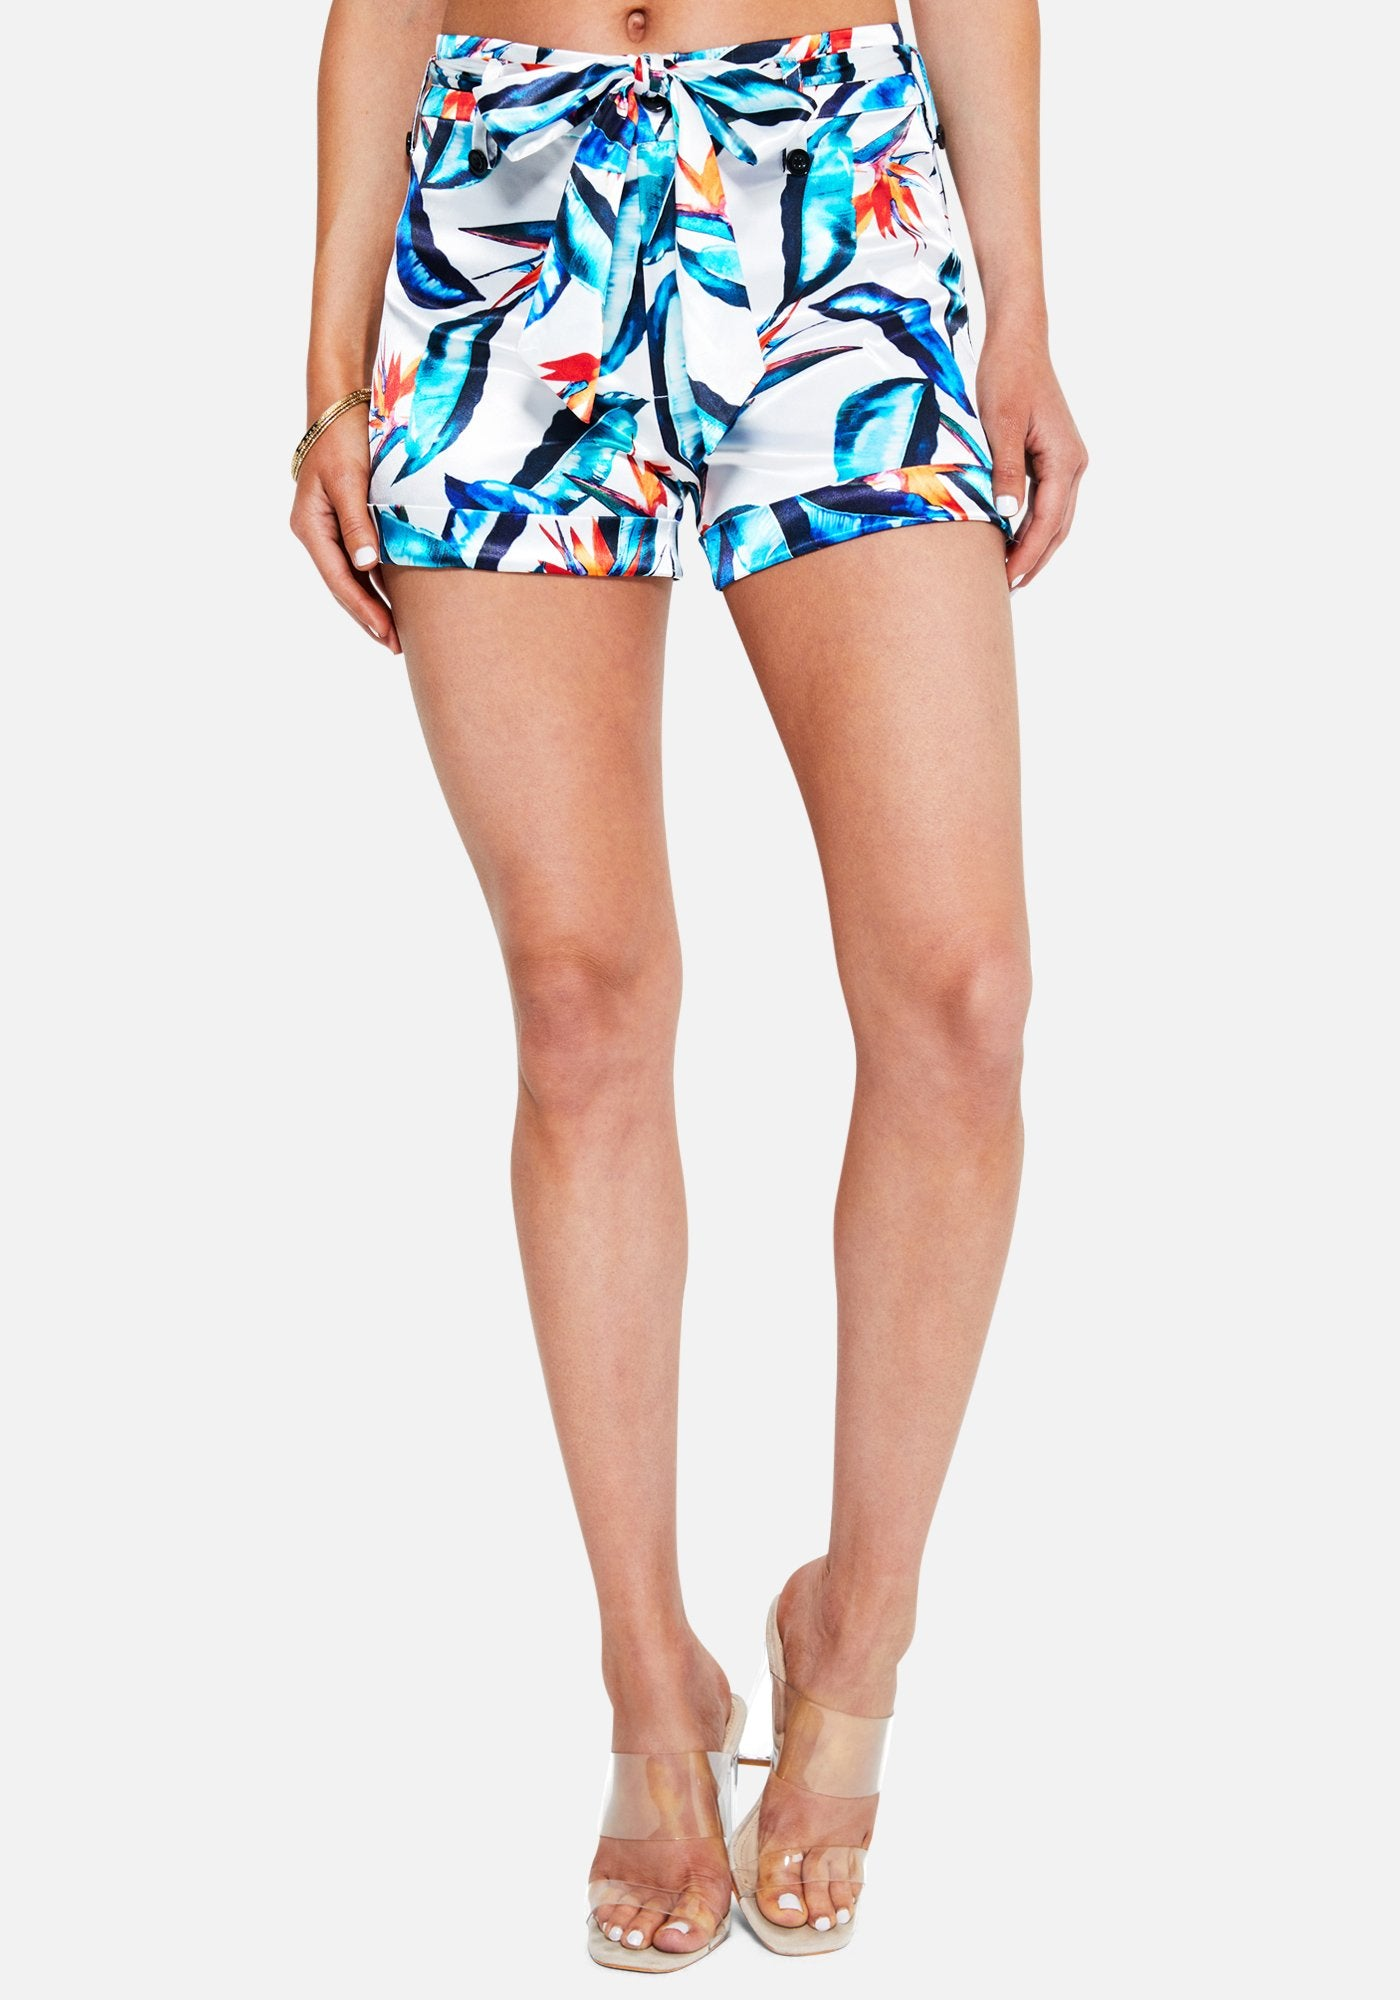 Bebe Women's Printed Satin High Waist Shorts, Size 00 in TROPICAL Spandex